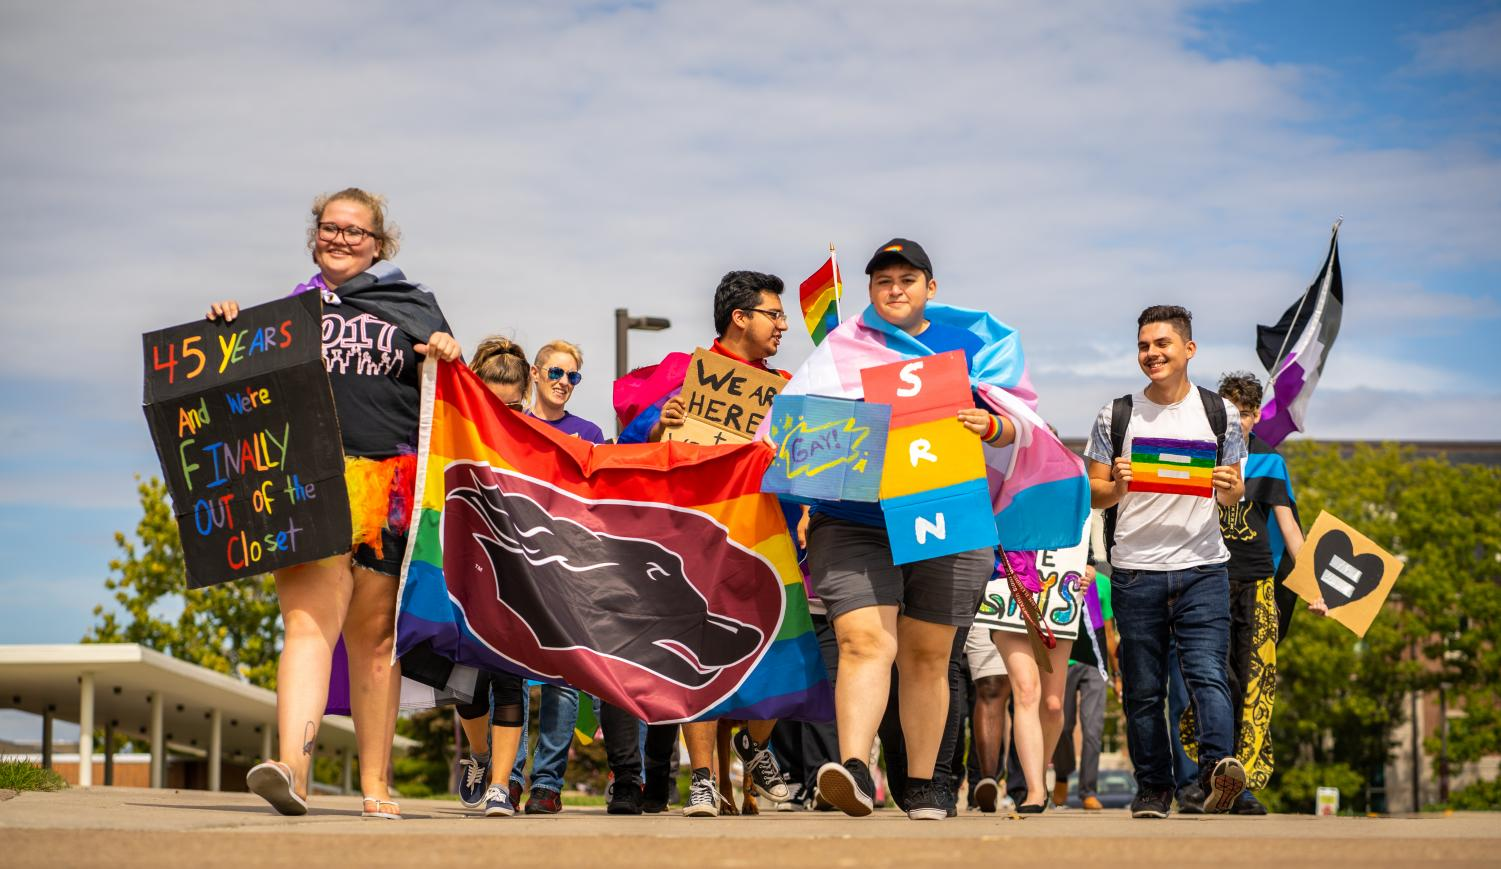 Members+of+the+Saluki+Rainbow+Network+walk+around+campus+Monday%2C+Oct.+1%2C+2018.+The+RSO+put+on+the+LGBTQ%2B+Pride+Walk+to+spread+love+and+acceptance+across+the+campus+community.+%28Dillon+Gilliland+%7C+Daily+Egyptian%29